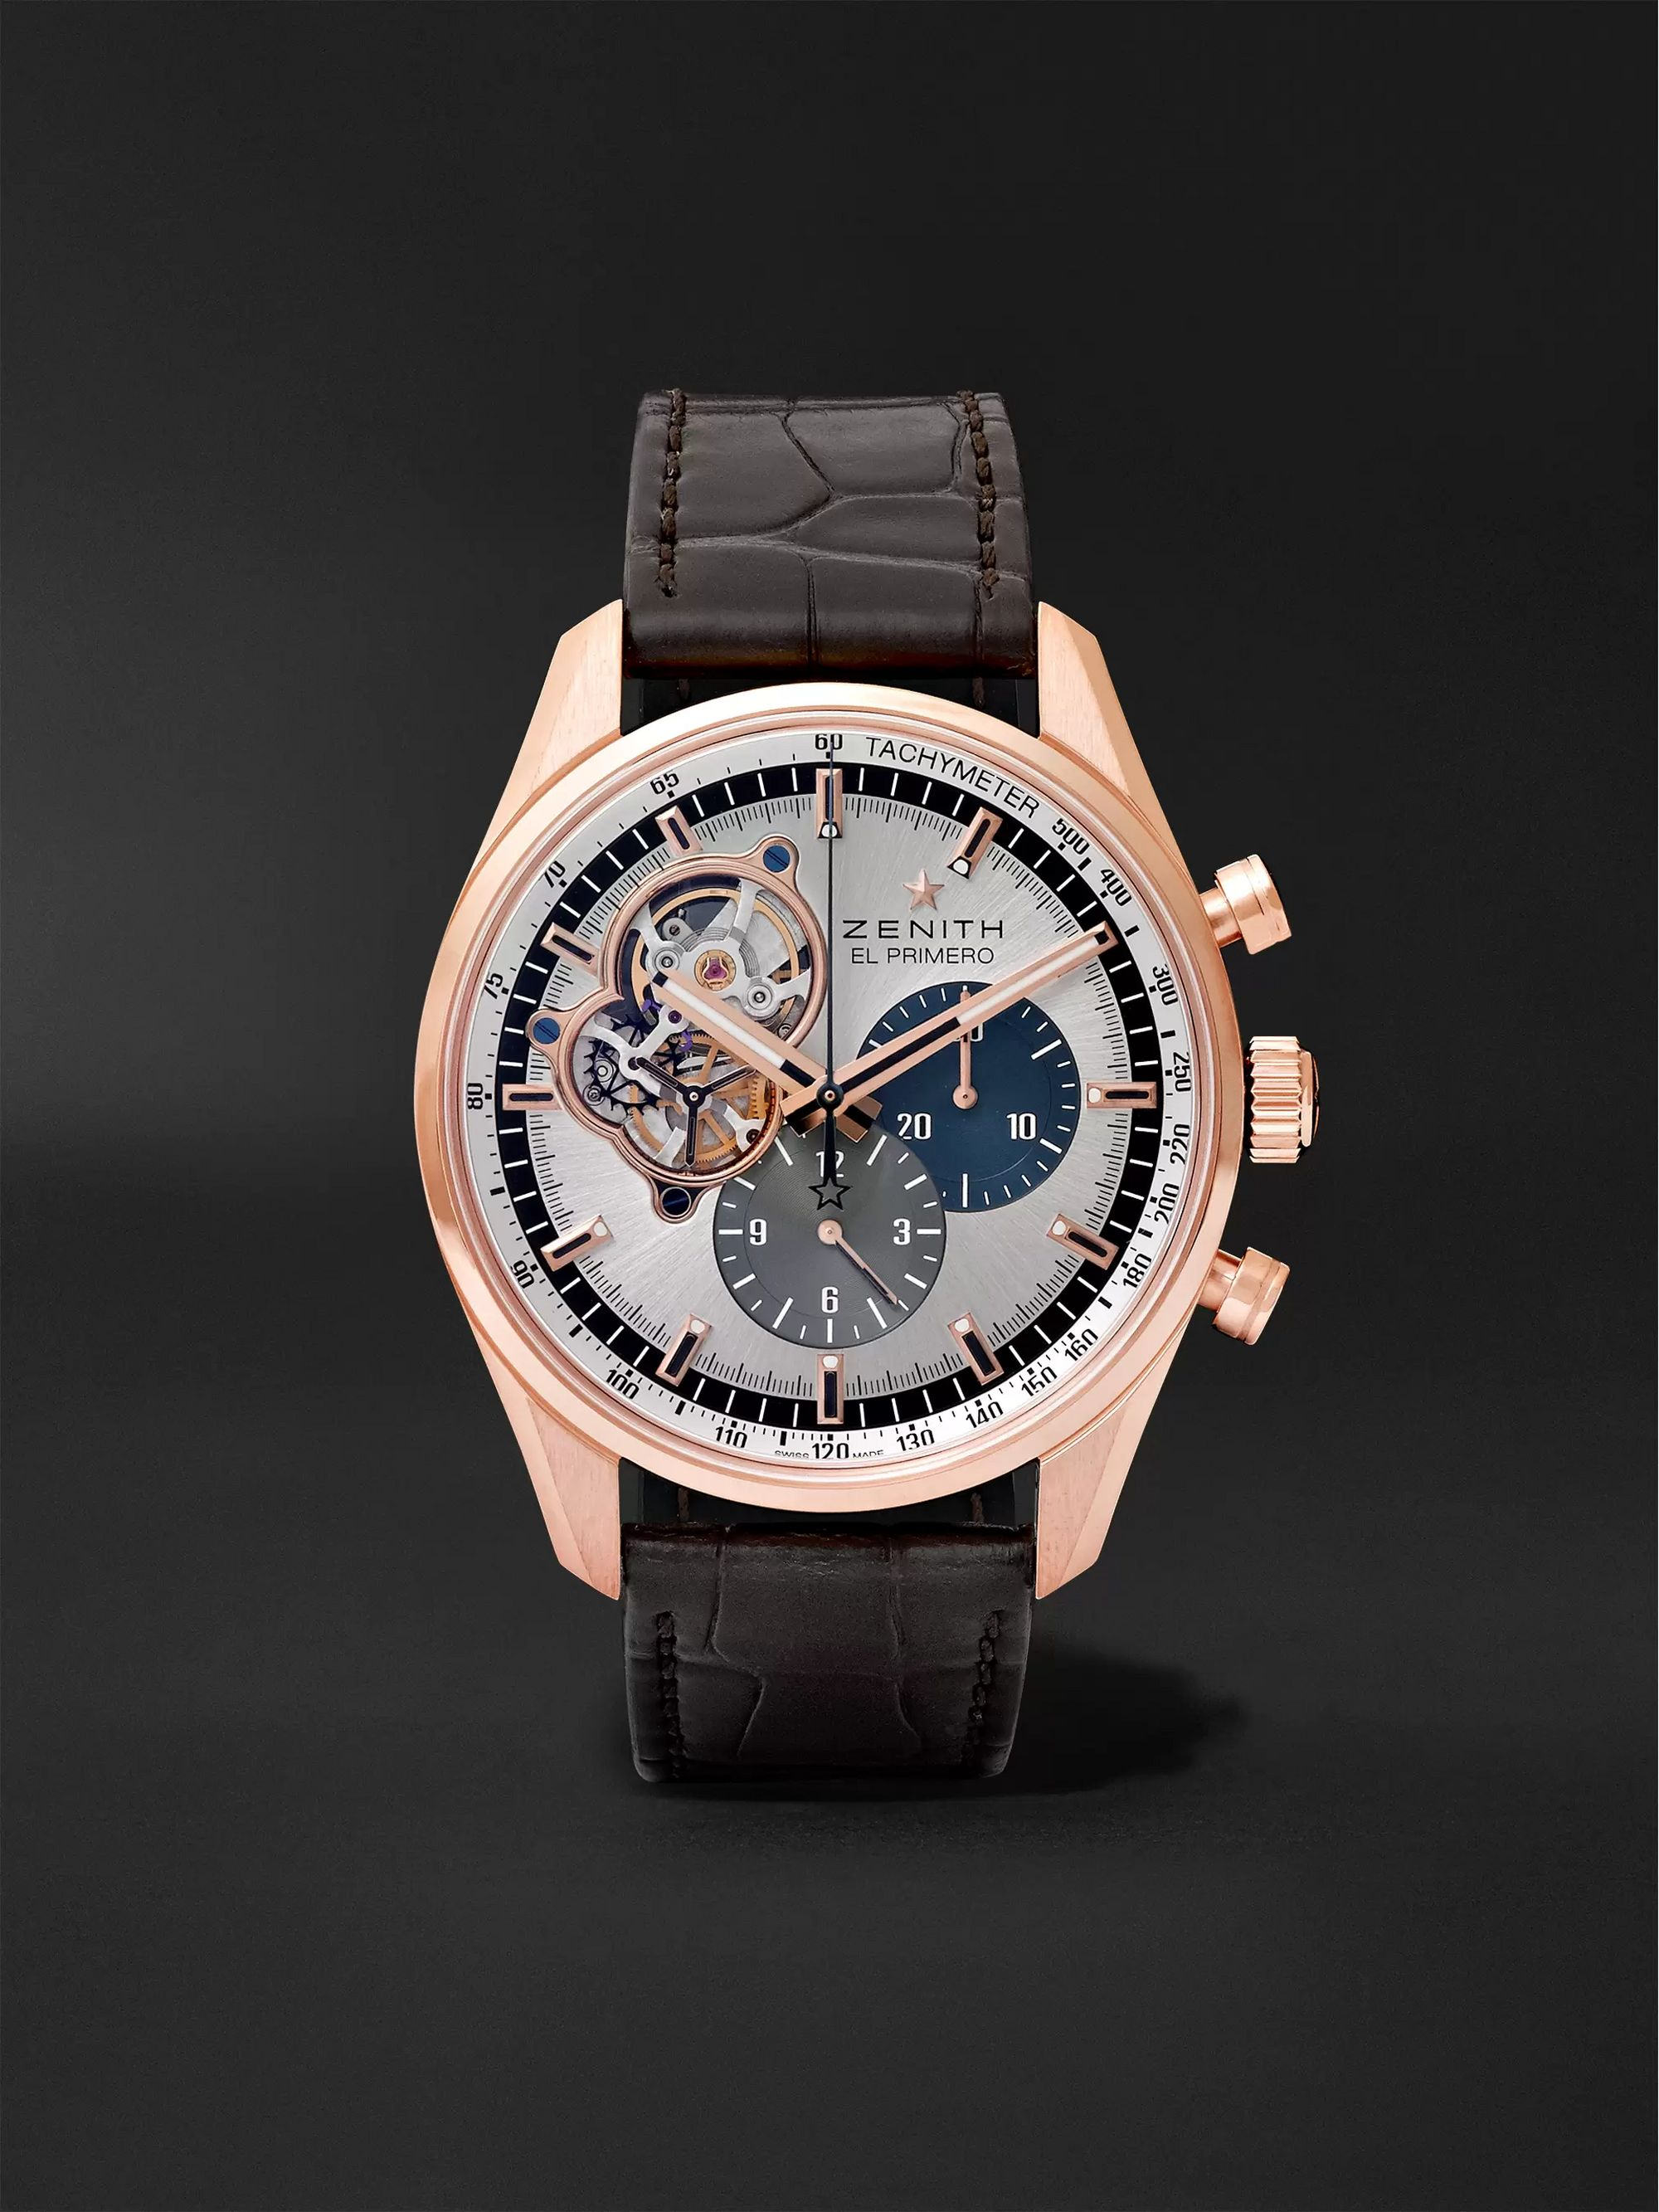 Zenith El Primero Chronomaster 42mm 1969 Rose Gold and Alligator Watch, Ref. No. 18.2040.4061/69.C494